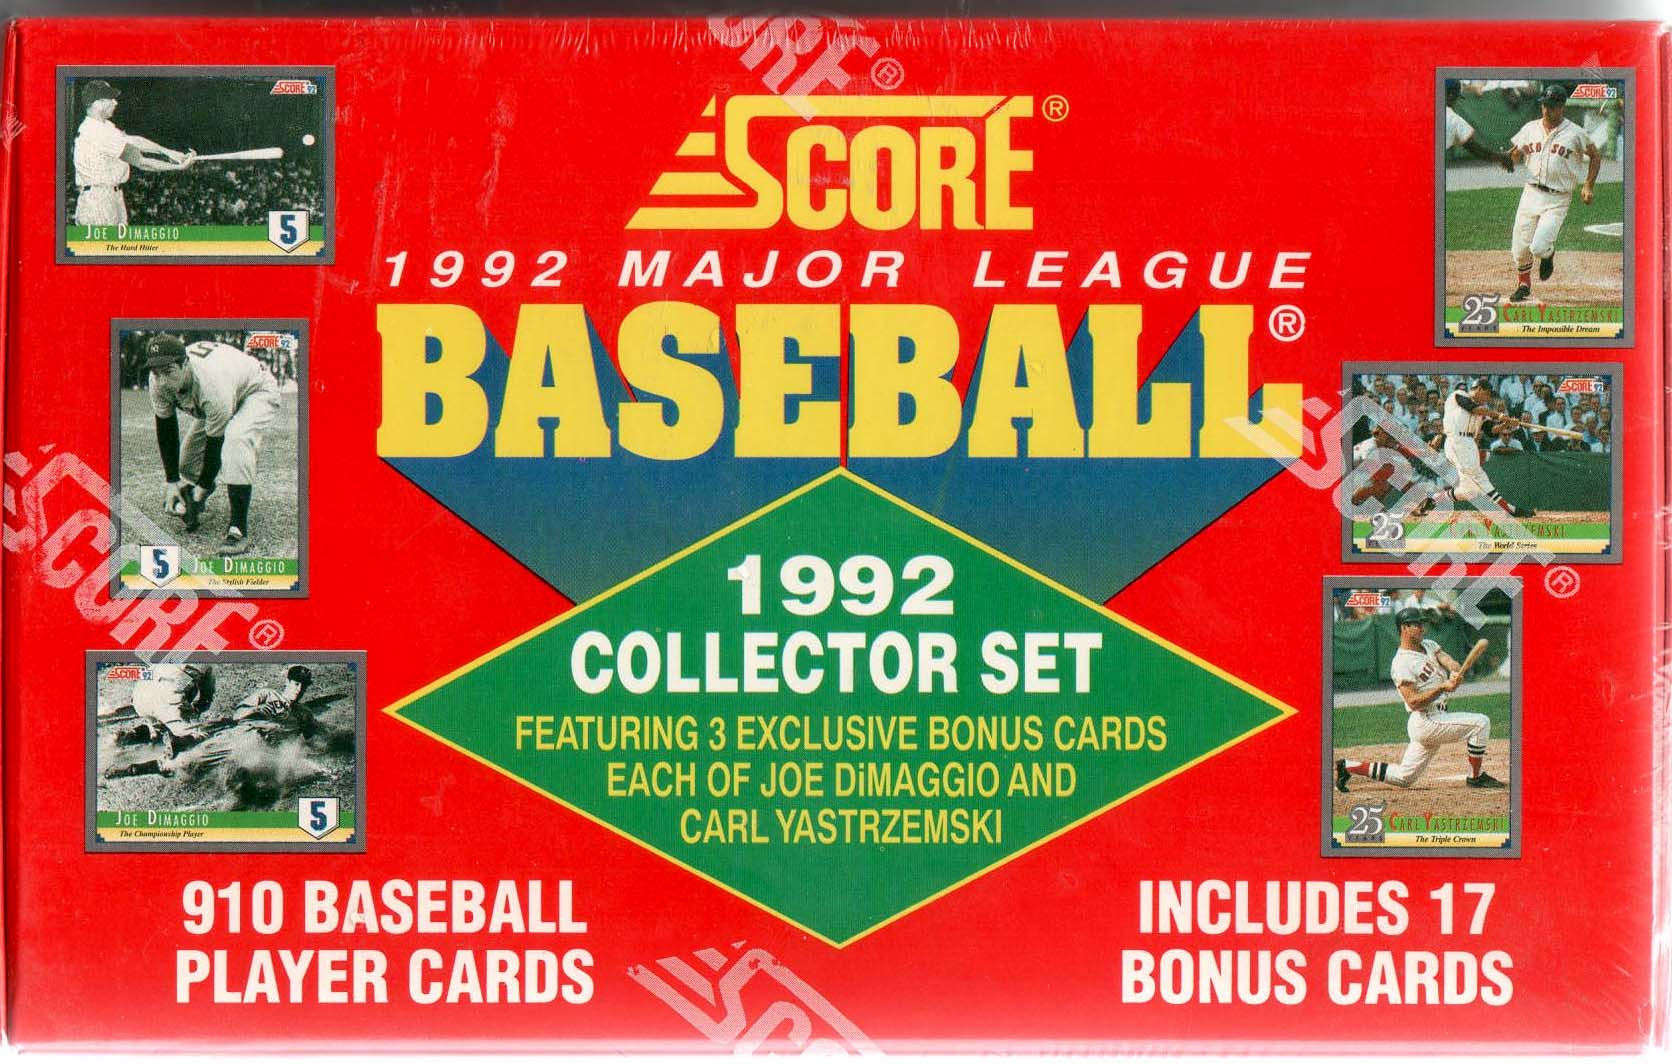 1992 SCORE BASEBALL FACTORY SEALED SET - 910 CARD SET